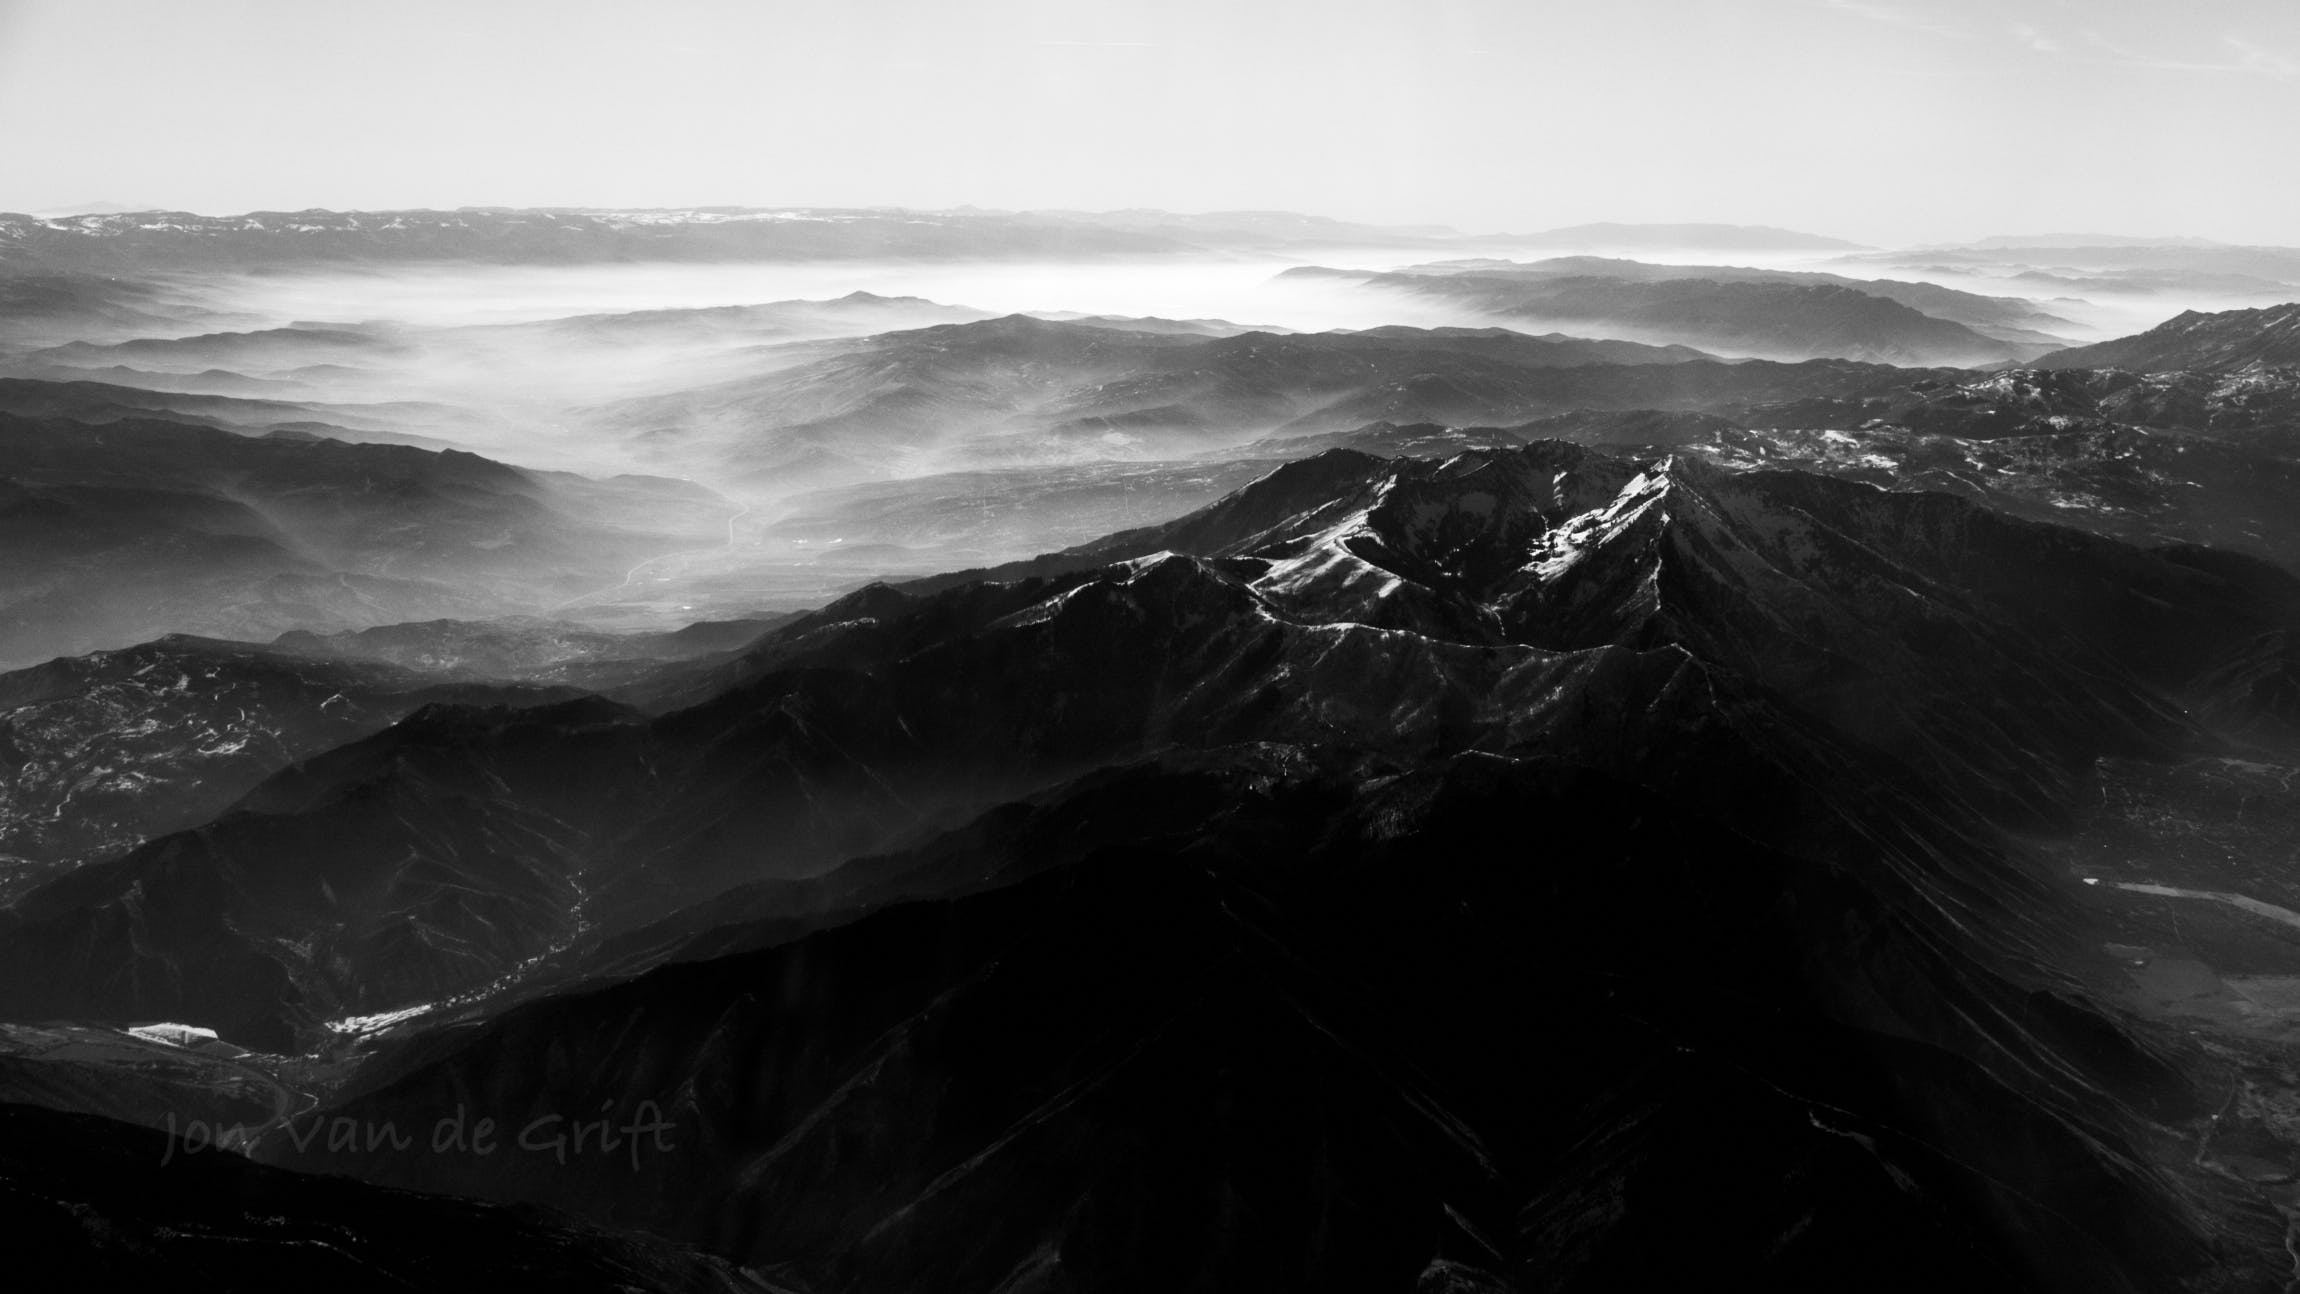 Monochromatic aerial photograph of dust and haze around a mountain summit.